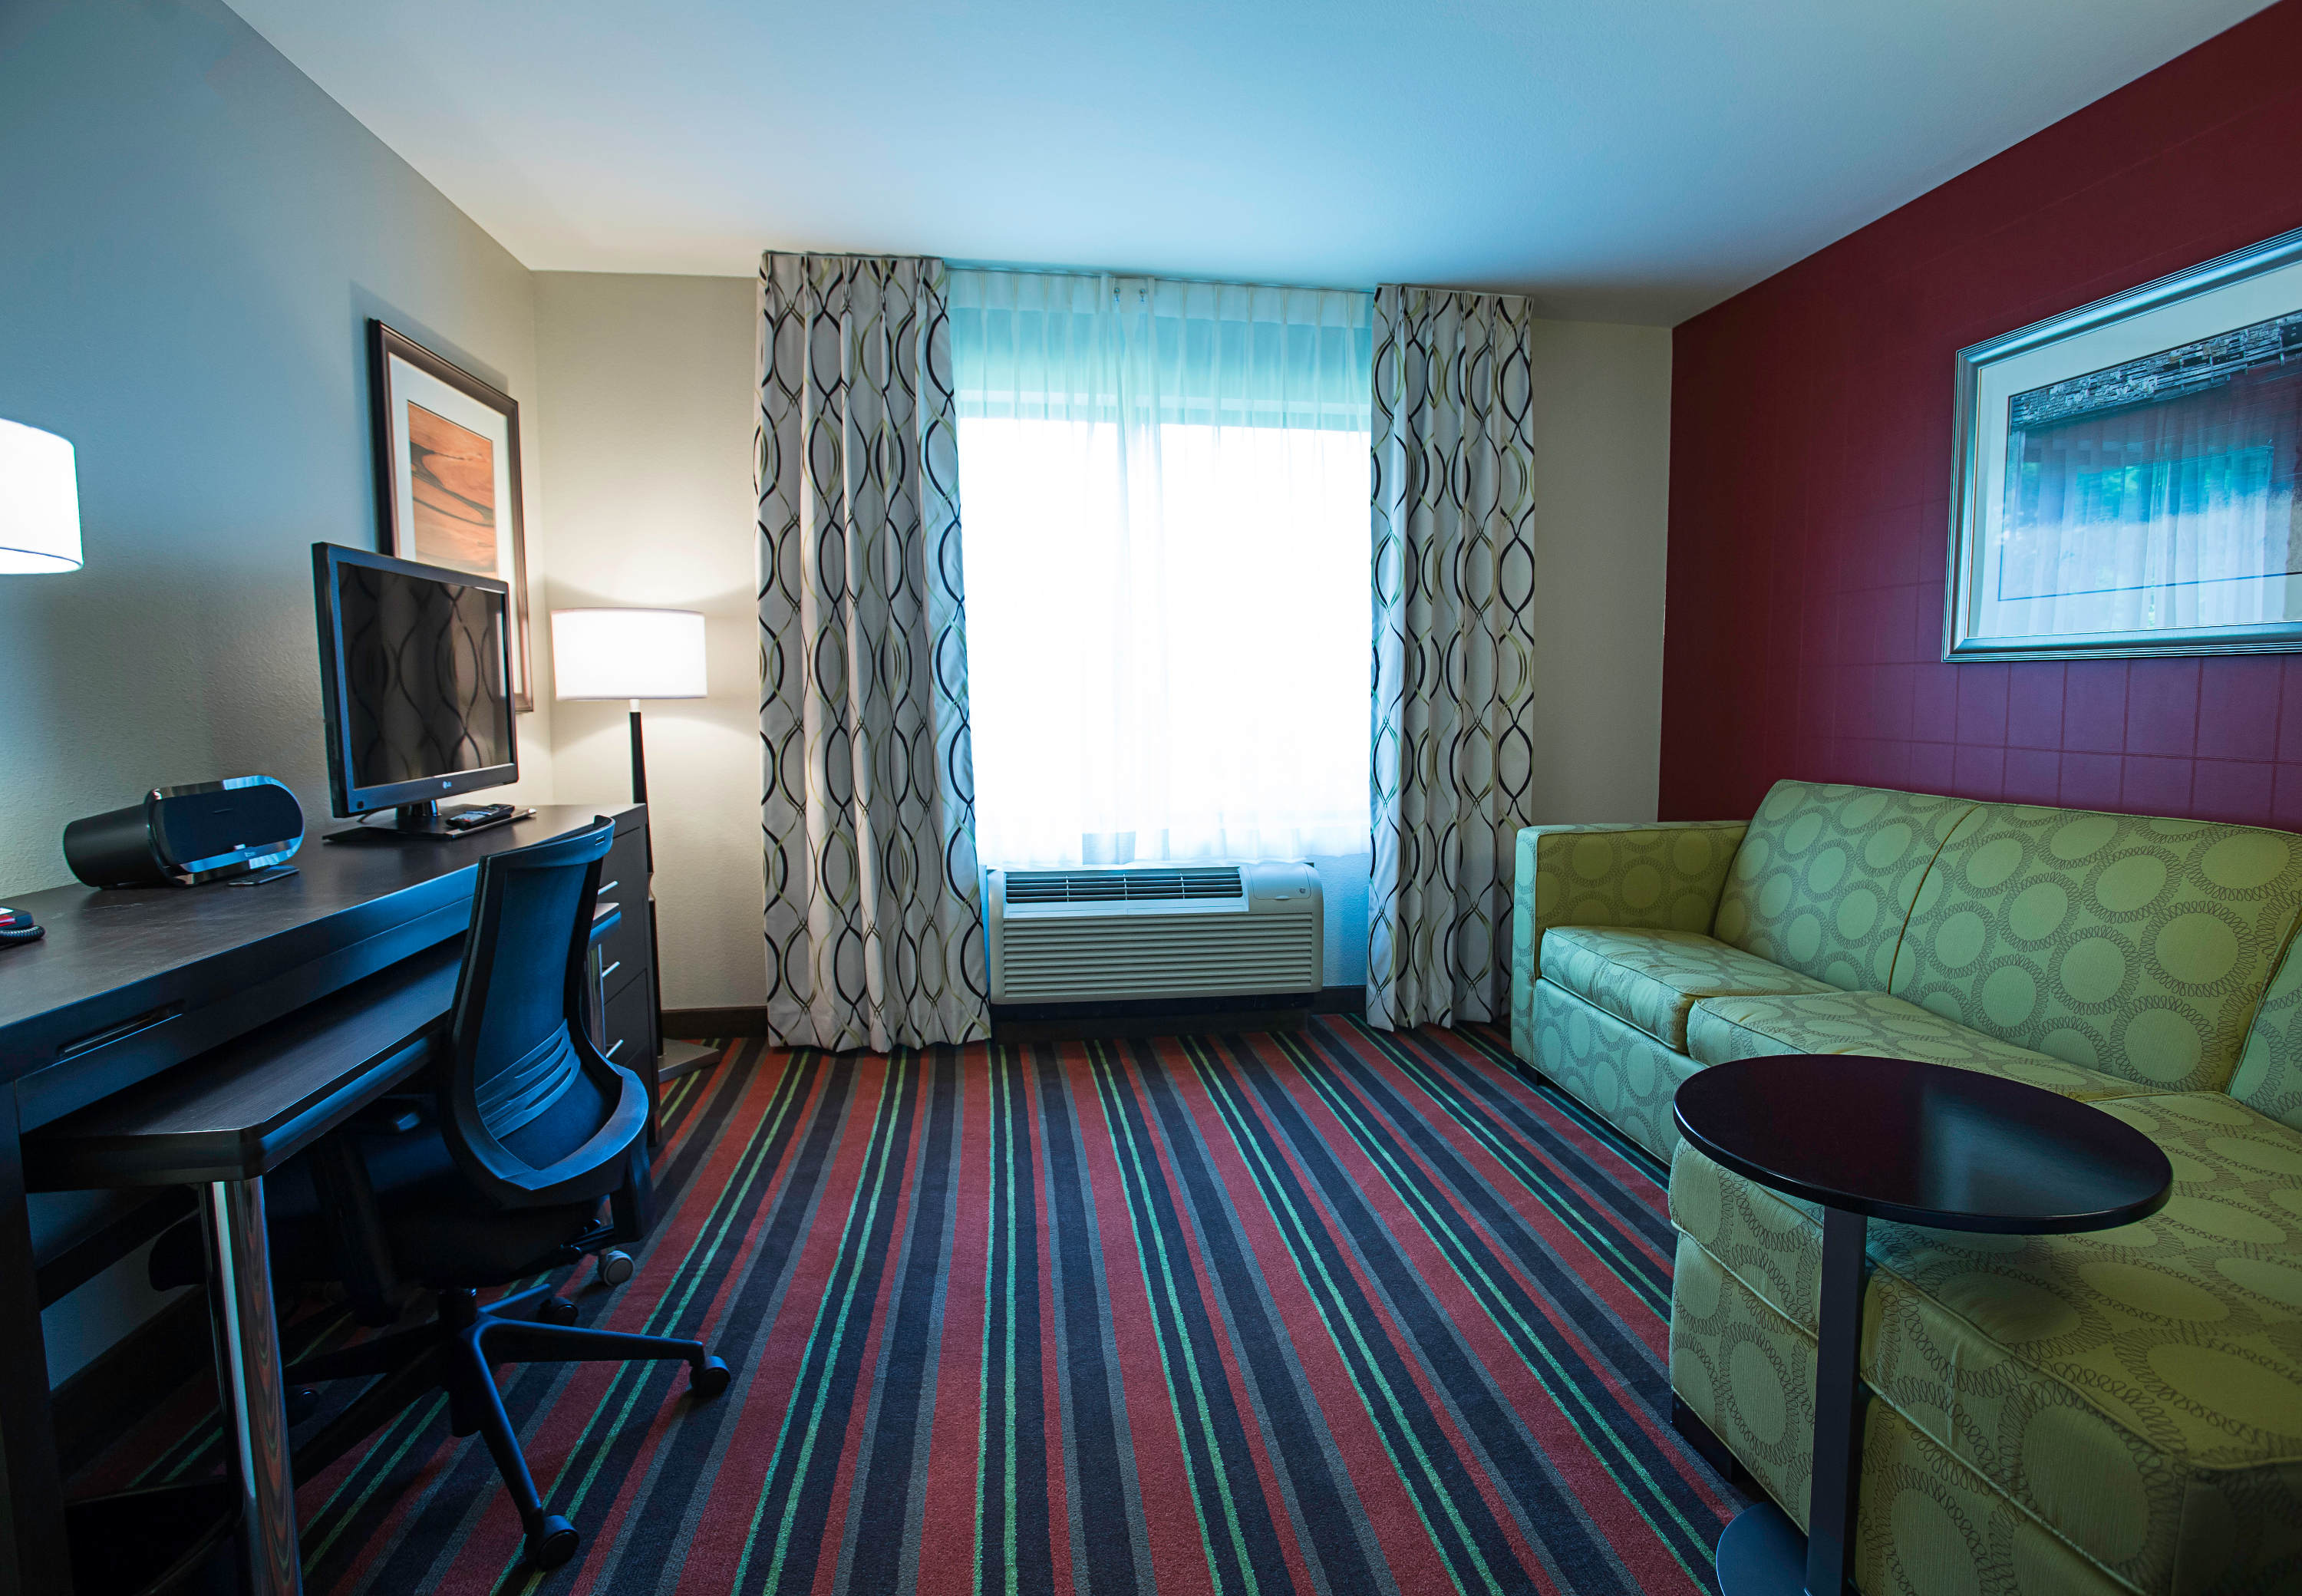 Fairfield Inn & Suites by Marriott Moscow image 5